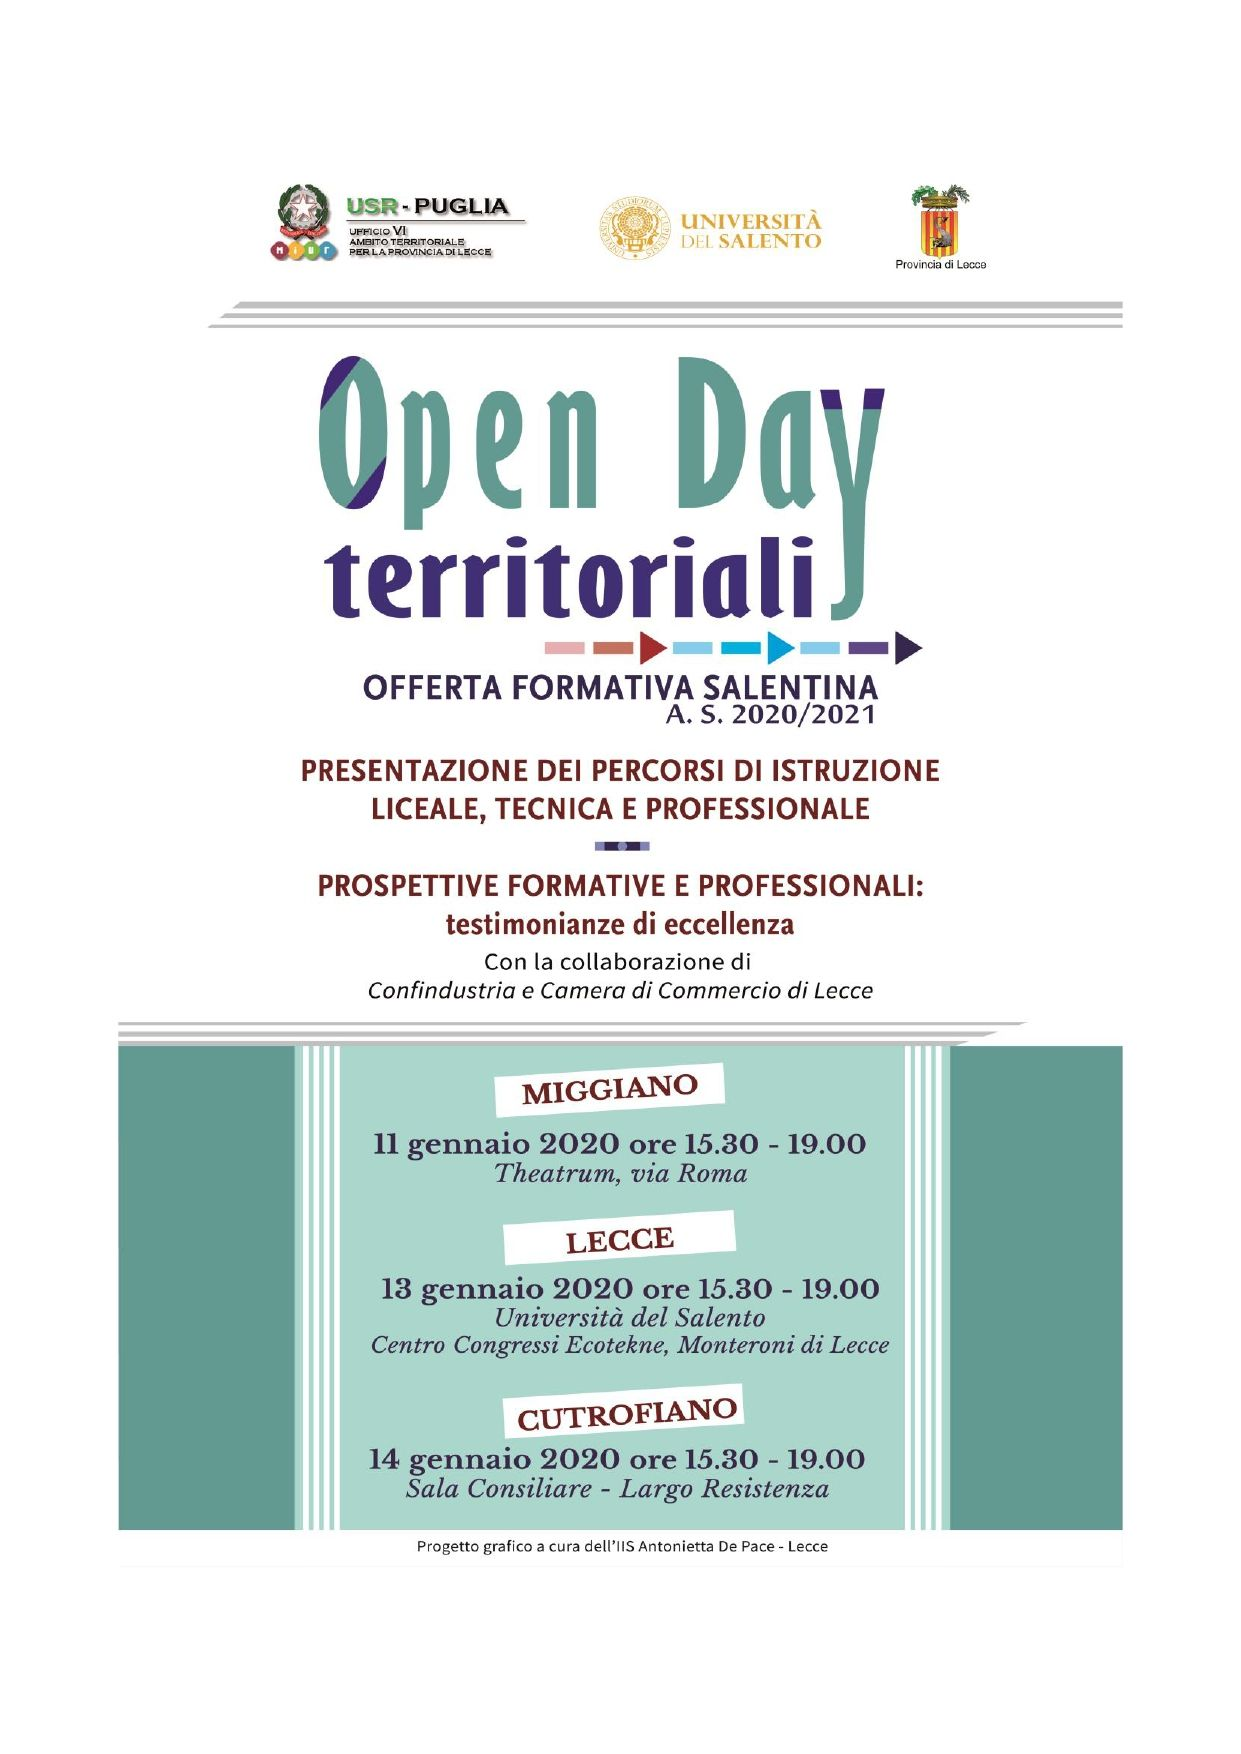 locandina%20open%20day%20territoriali.jp